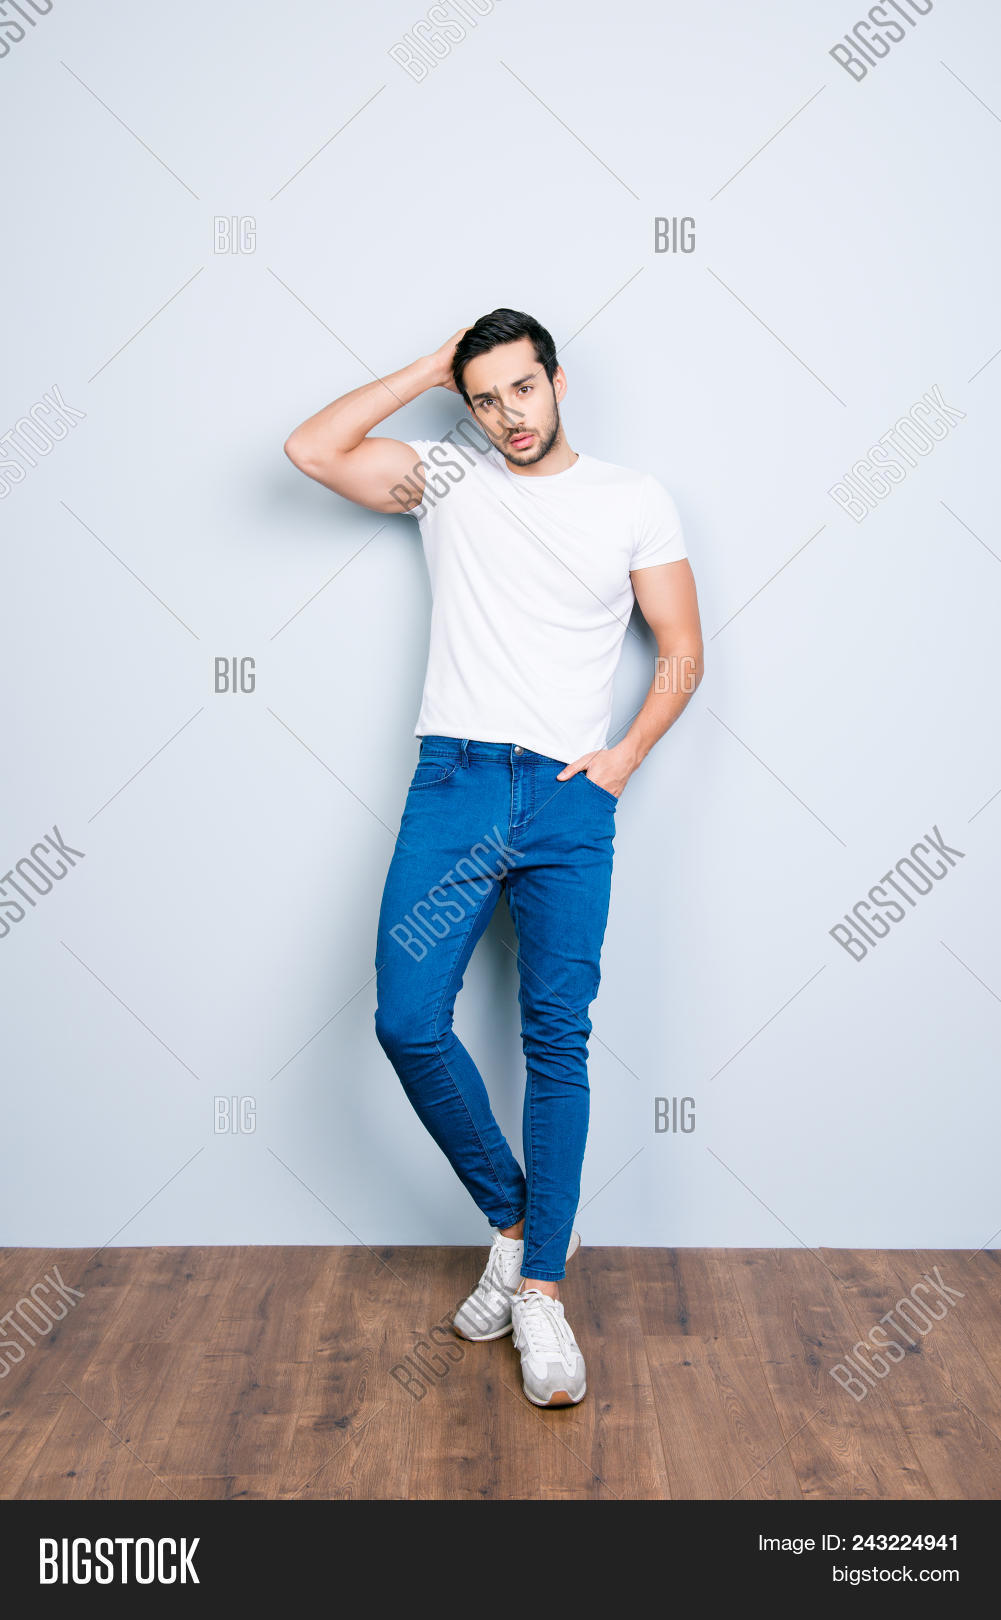 arabic,attractive,bachelor,beauty,boyfriend,bristle,brunet,casual,confident,cool,correcting,diverse,eastern,ethnicity,expression,fashion,fixing,full-length,guy,hair,hairstyle,handsome,harsh,hispanic,hold,jeans,macho,male,man,masculinity,middle,model,muscular,muslim,pants,people,pocket,posing,serious,sneakers,stubble,style,stylish,successful,t-shirt,top,trendy,virile,wall,young